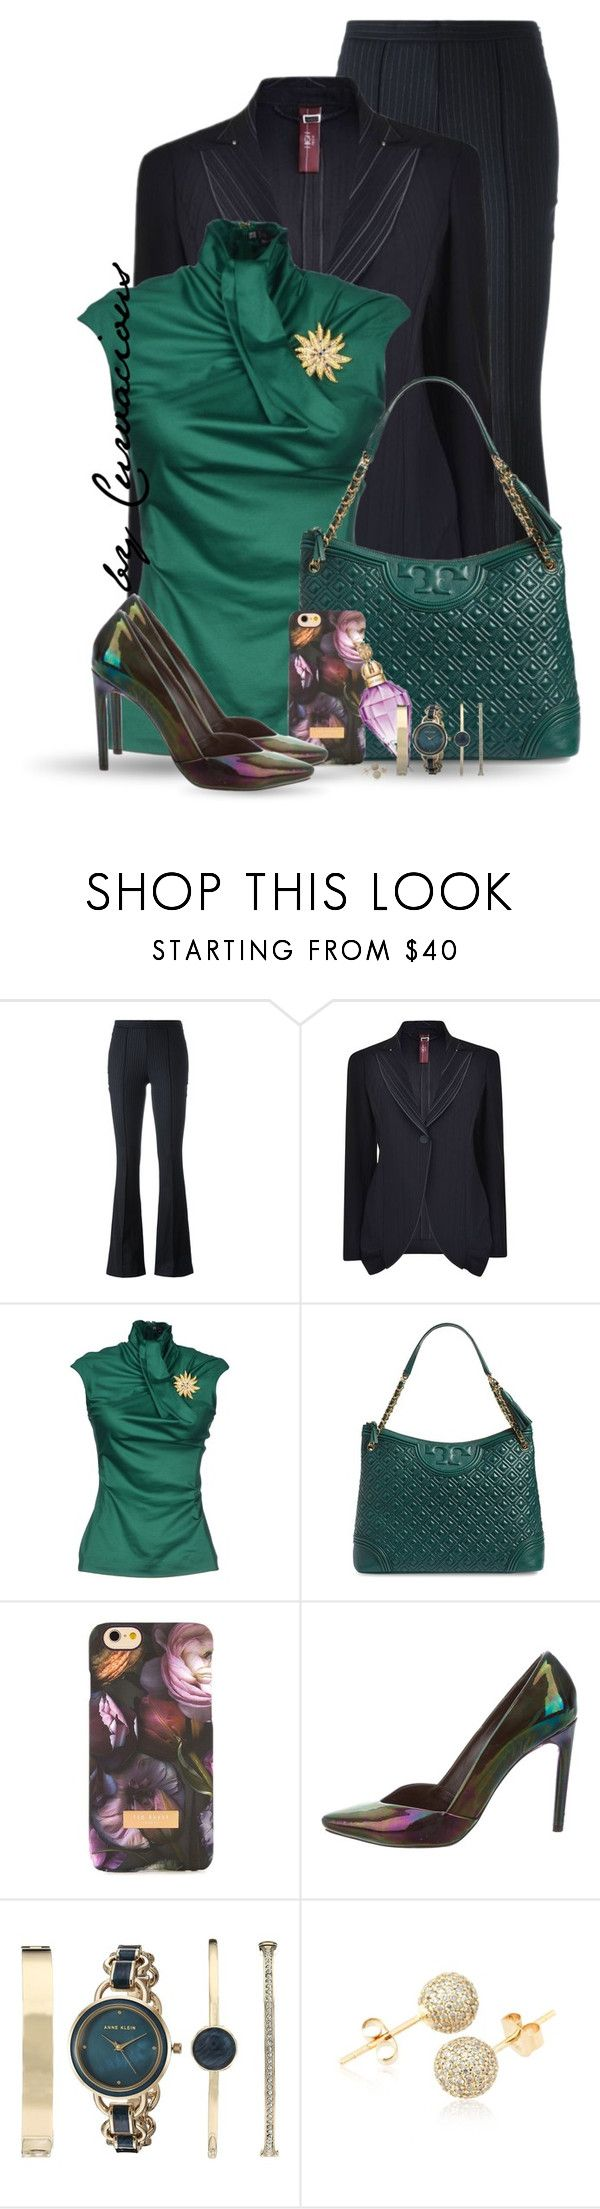 """Workwear: Trousers"" by curvacious ❤ liked on Polyvore featuring Erika Cavallini Semi-Couture, HIGH, Dsquared2, Tory Burch, Ted Baker, Proenza Schouler, Anne Klein and Loushelou"